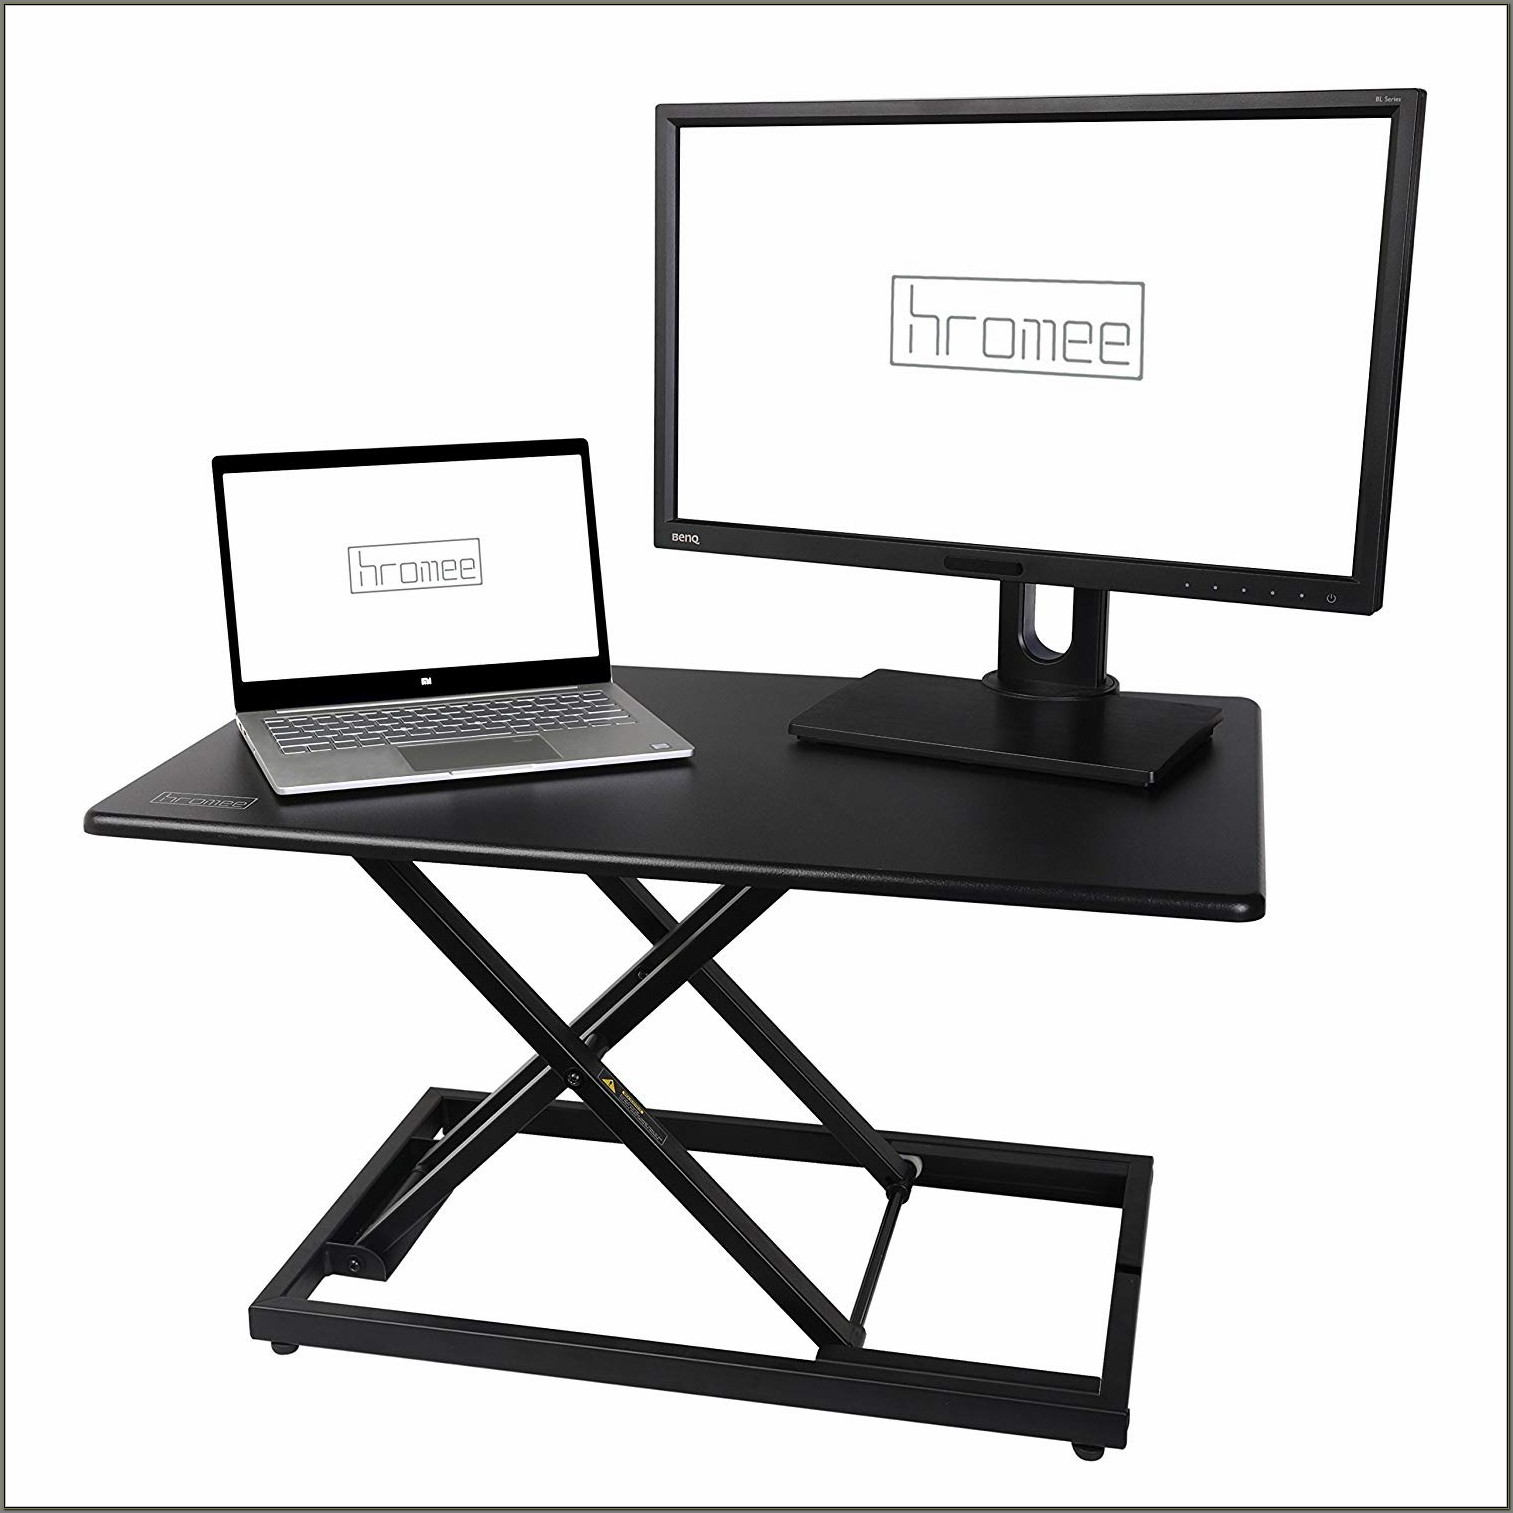 Adjustable Computer Stand For Desktop